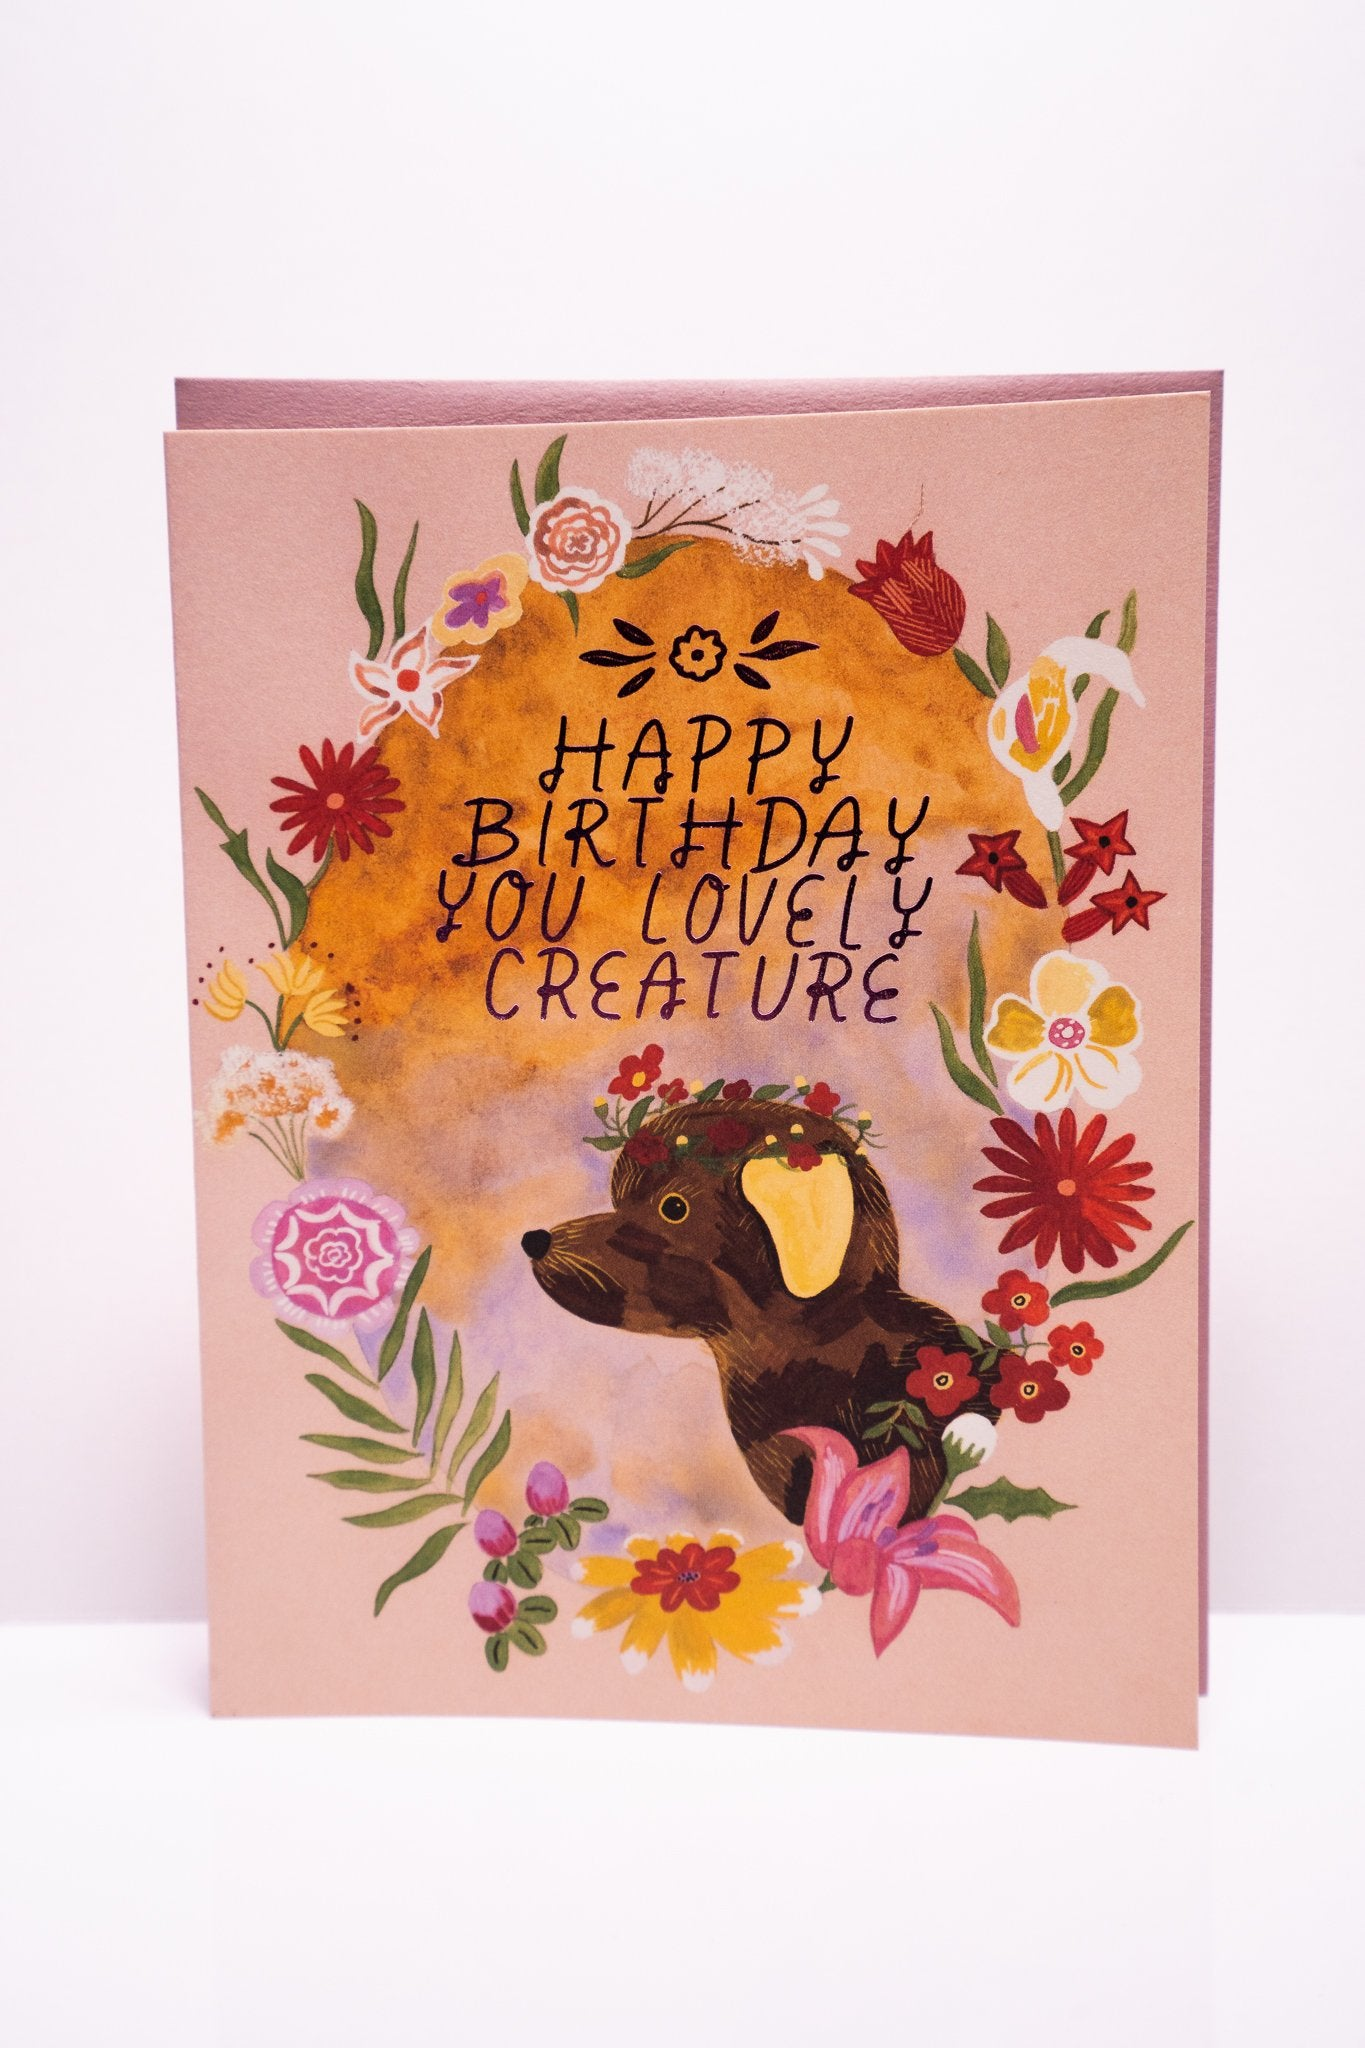 Lovely Creature Birthday Card